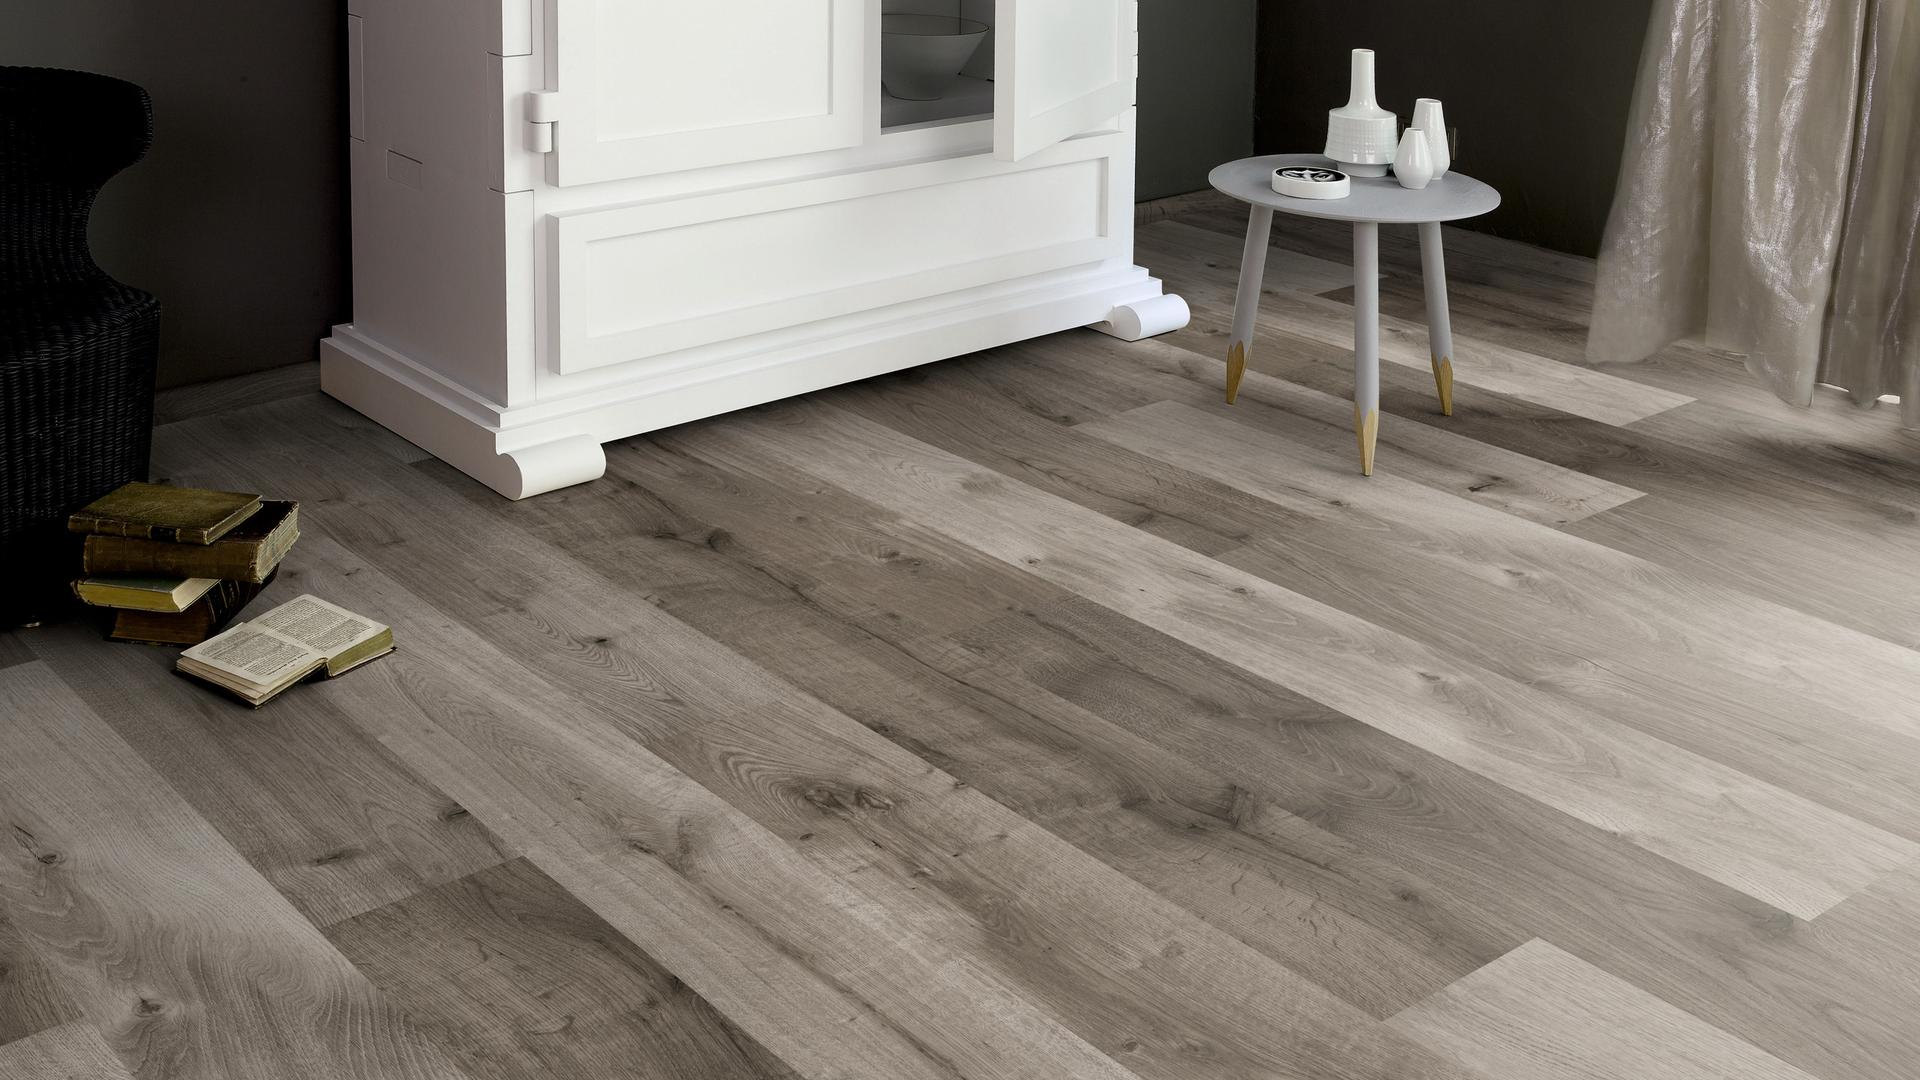 Home High Gloss 8mm Distressed Grey Oak 4V Laminate Flooring